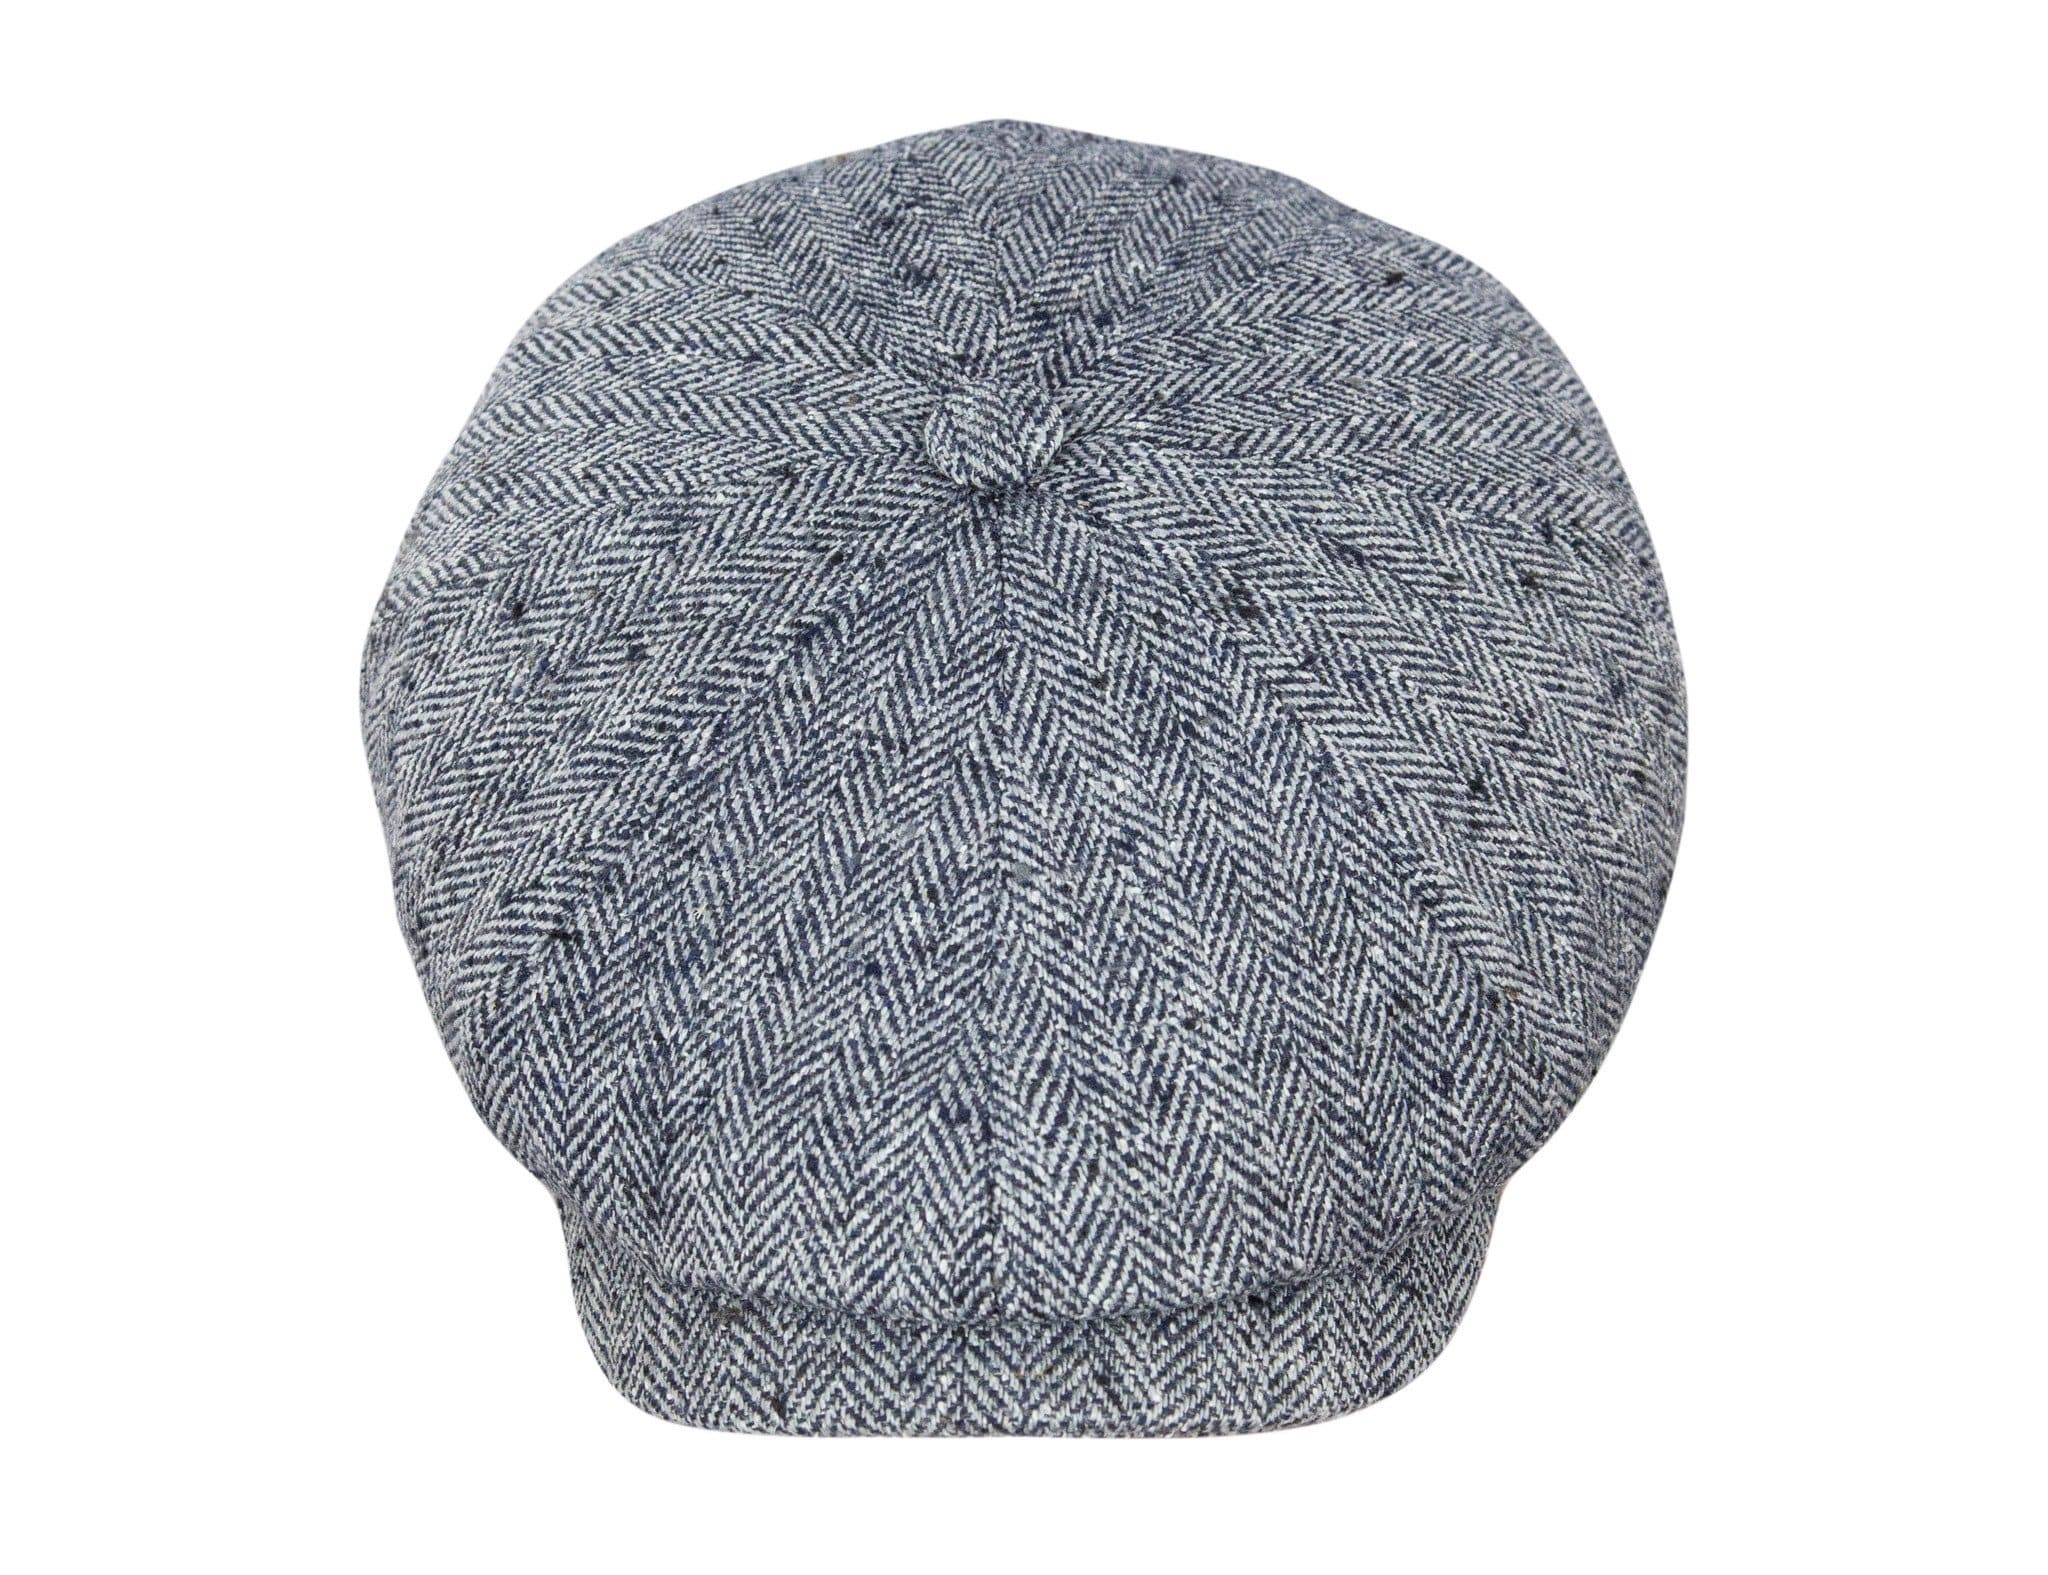 724edf0cc08 The Hatteras Silk Newsboy - JJ Hat Center